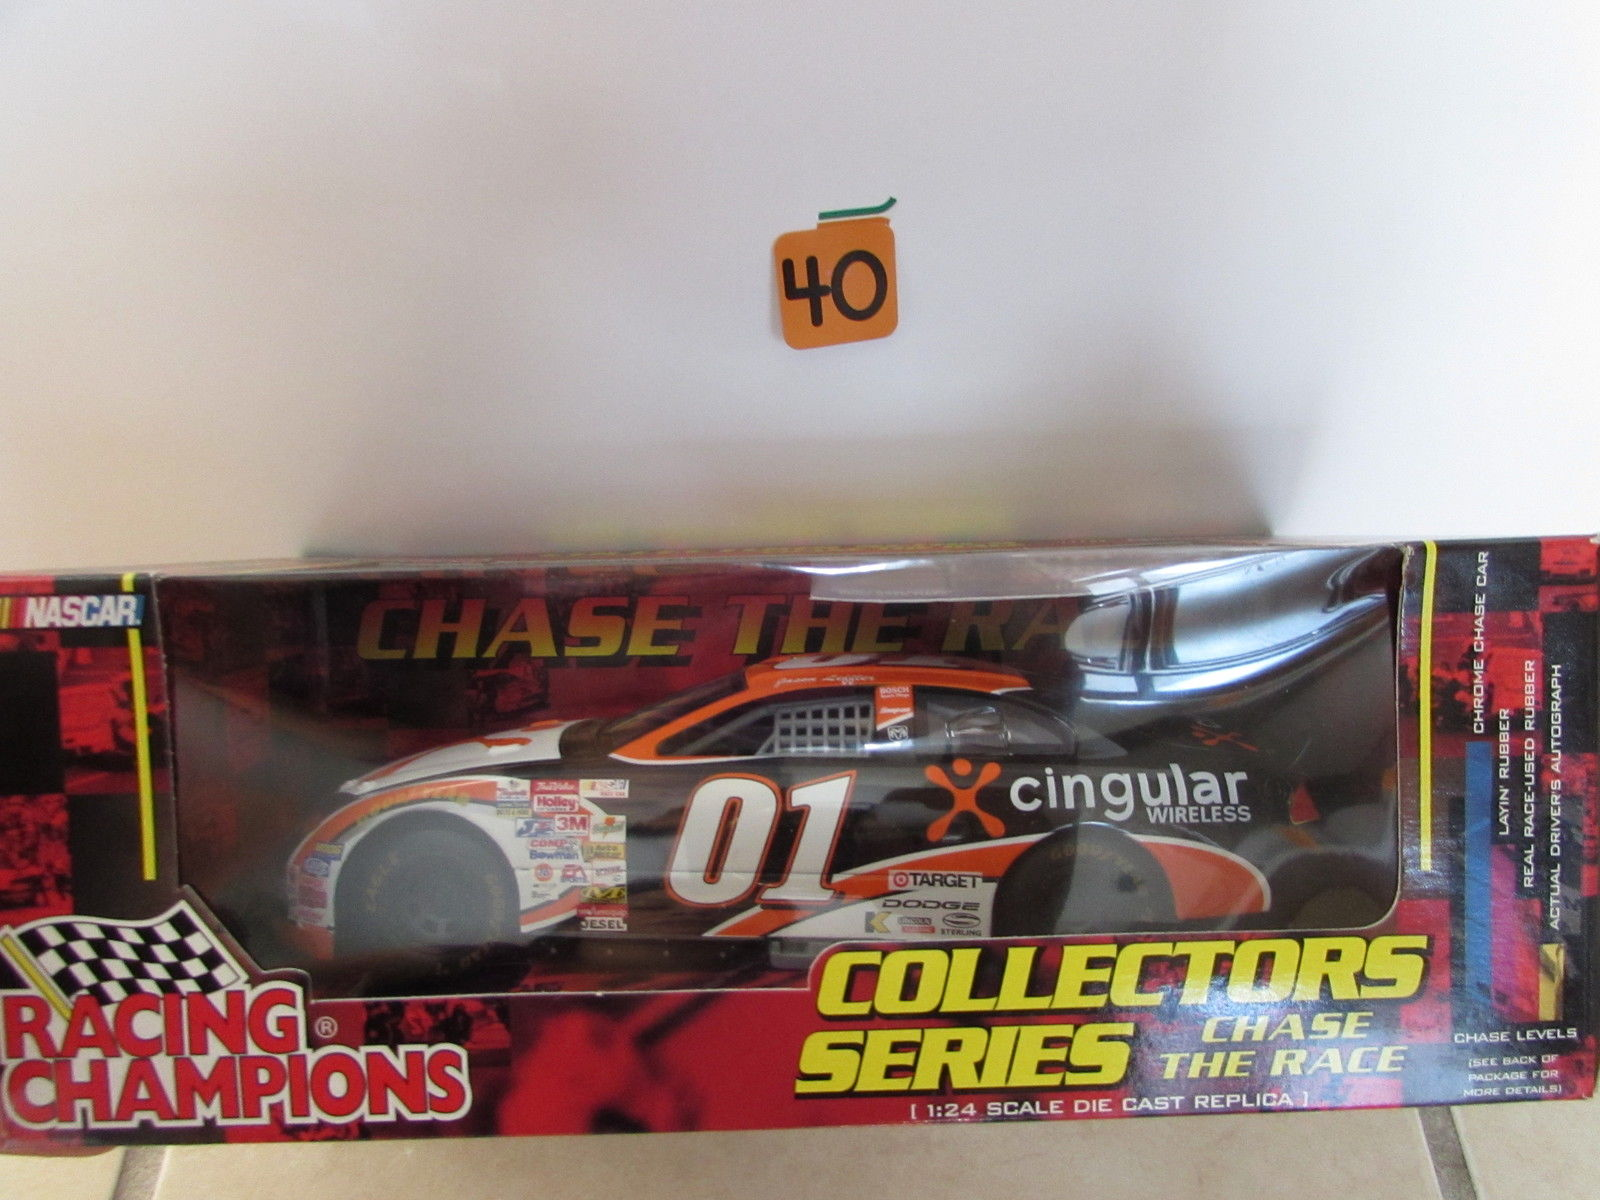 RACING CHAMPIONS NASCAR CHASE THE RACE JASON LEFFER RARE #01 SCALE1:24